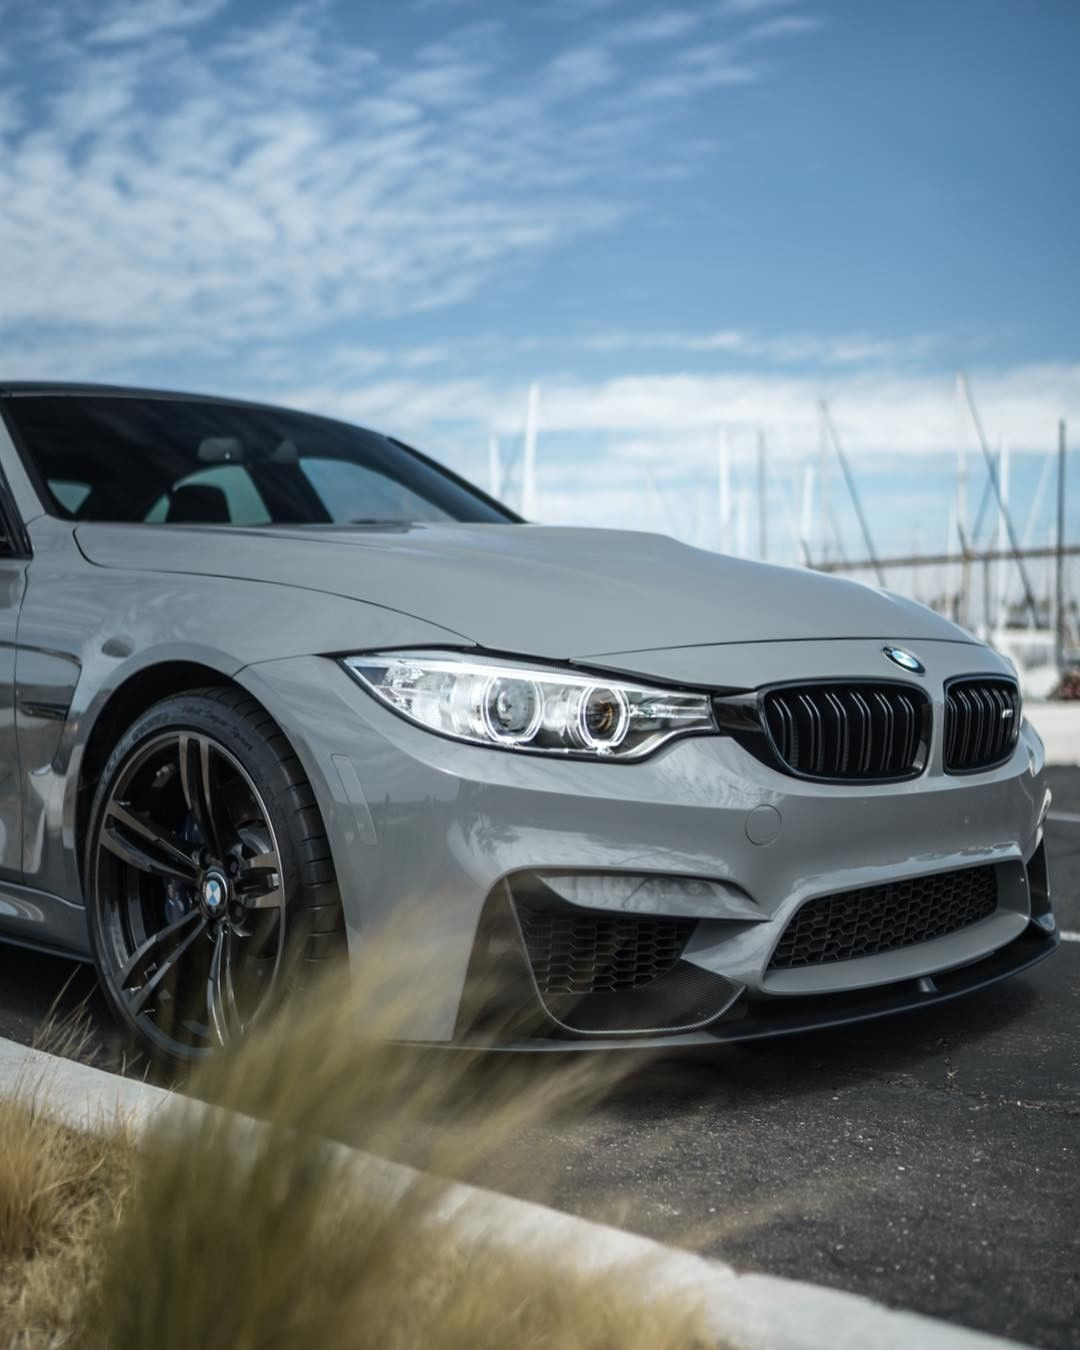 Pin By Denton Lunsford On Sweet Ride Bruh Pinterest Bmw Cars